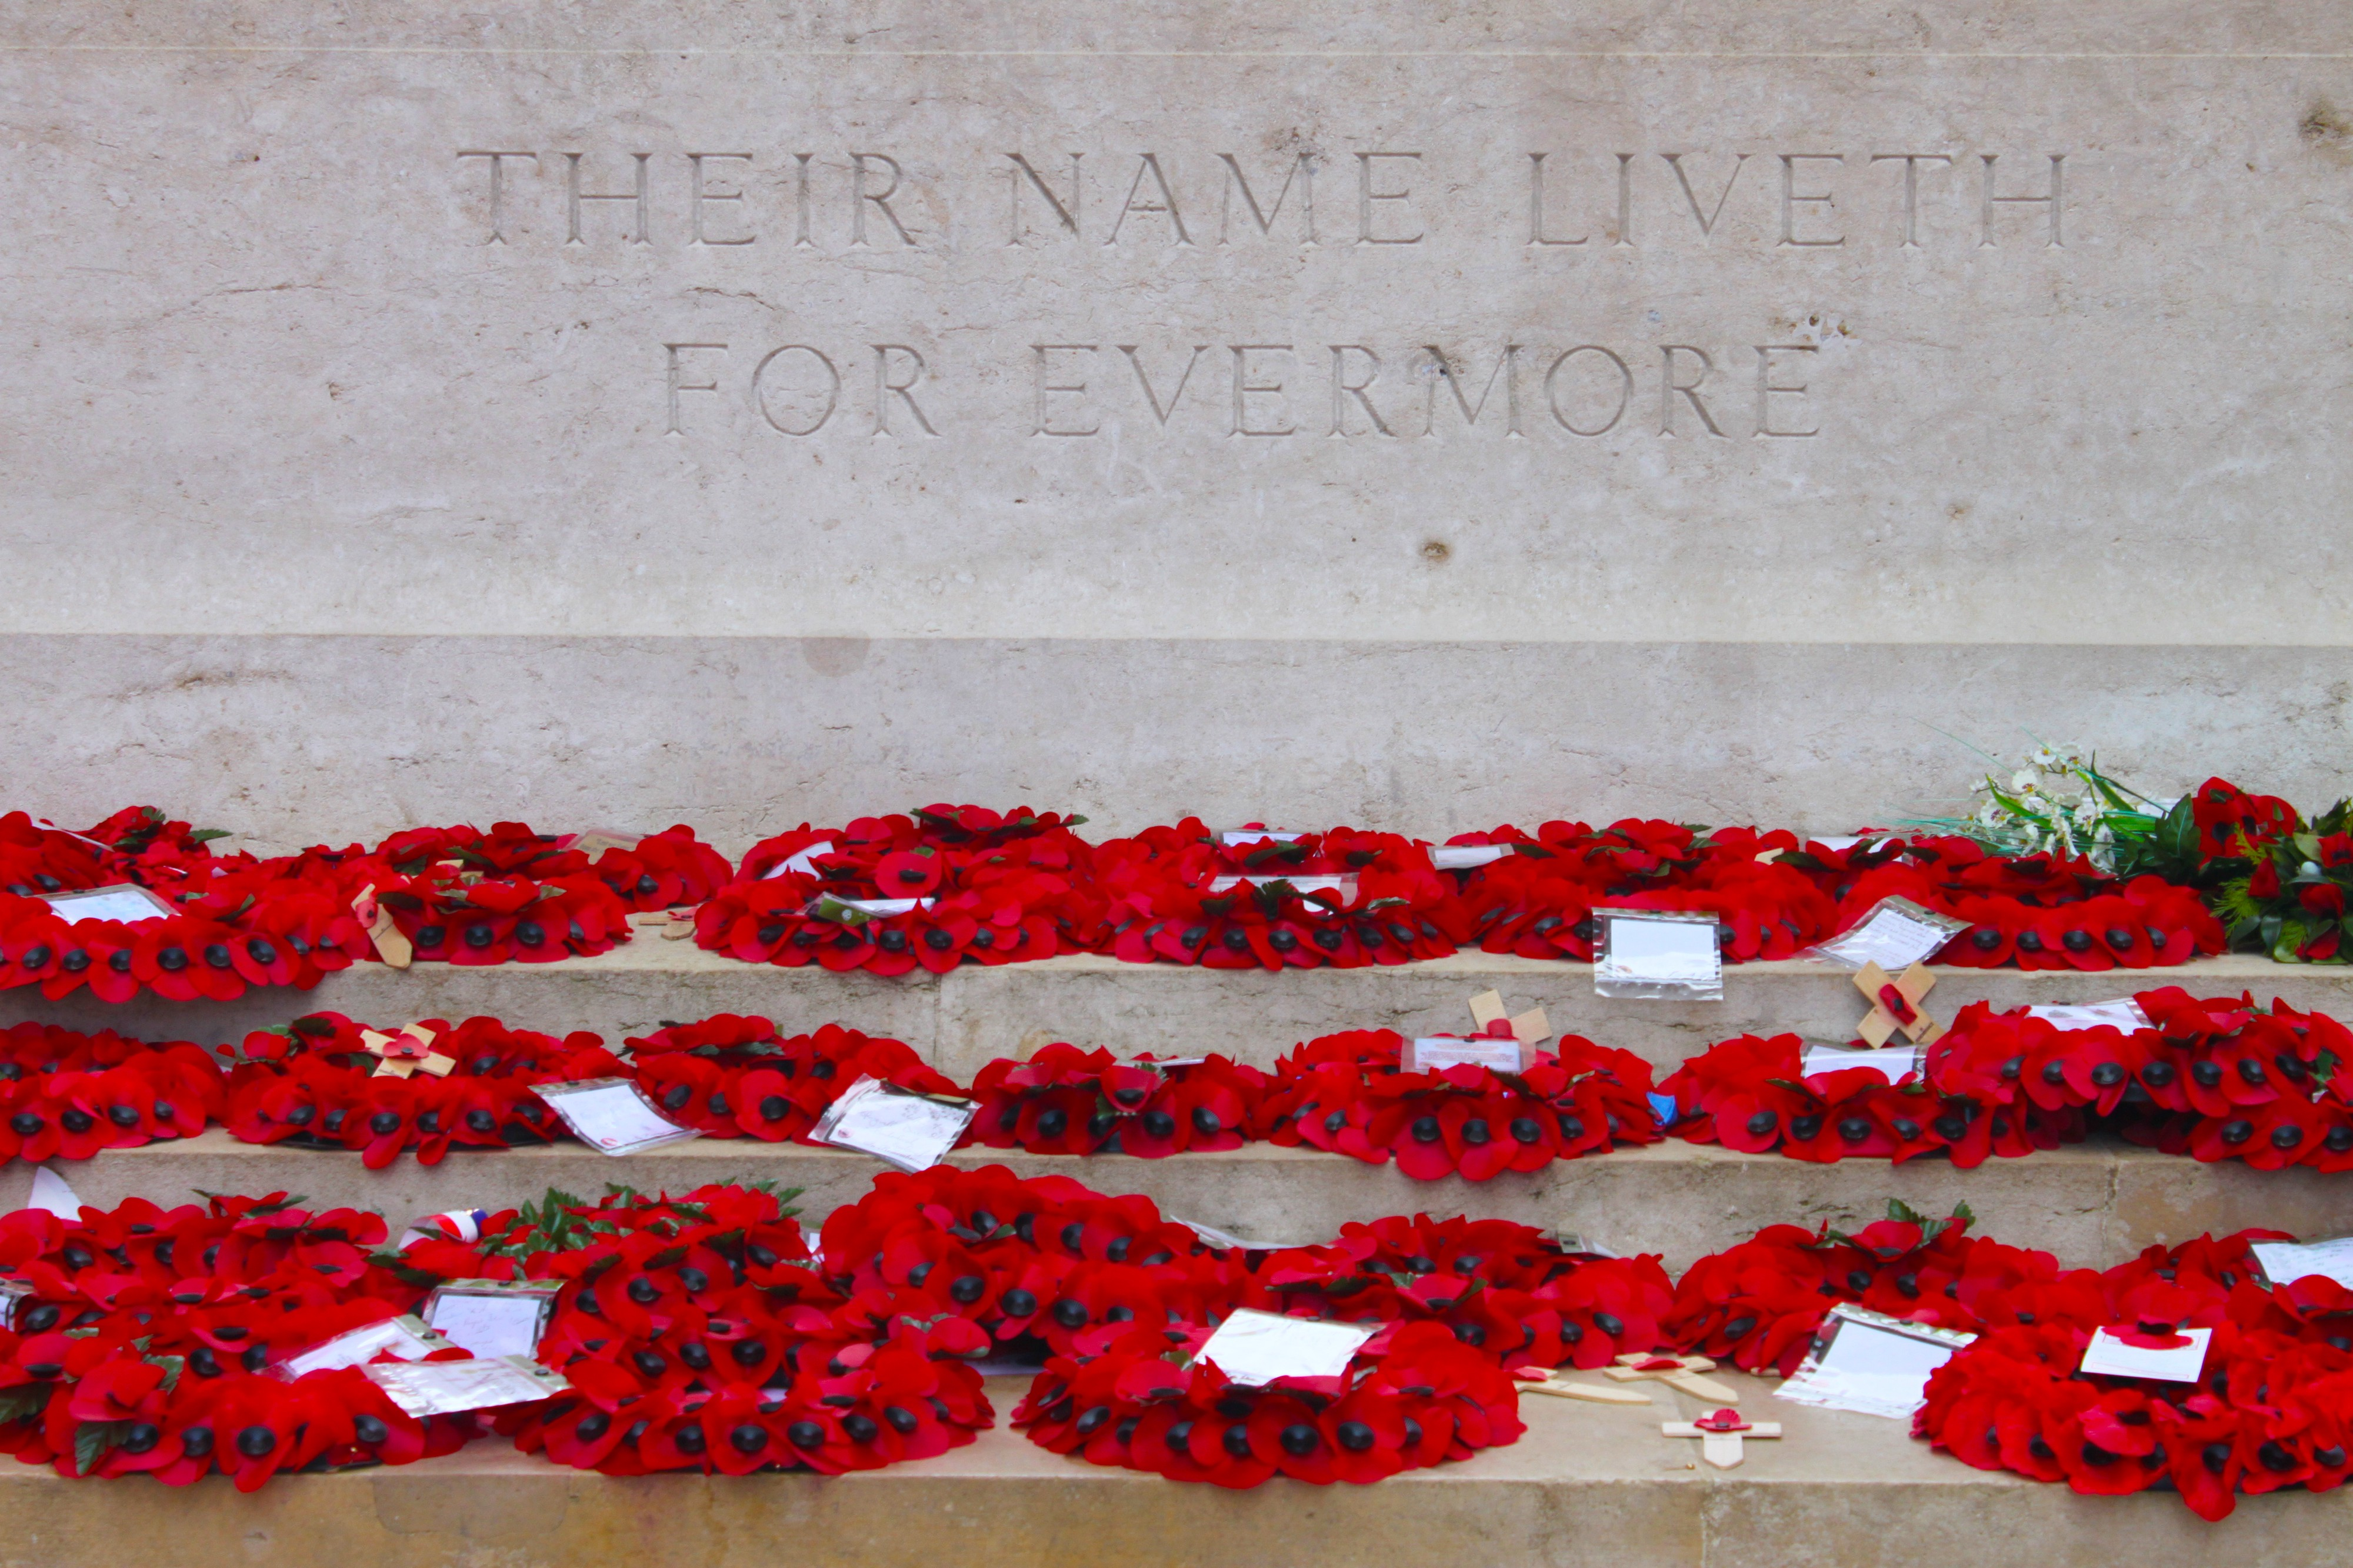 """Memorial Day poppy wreaths shrewn and laid in front of the engraved wall """"Their Name Liveth For Everyone""""."""